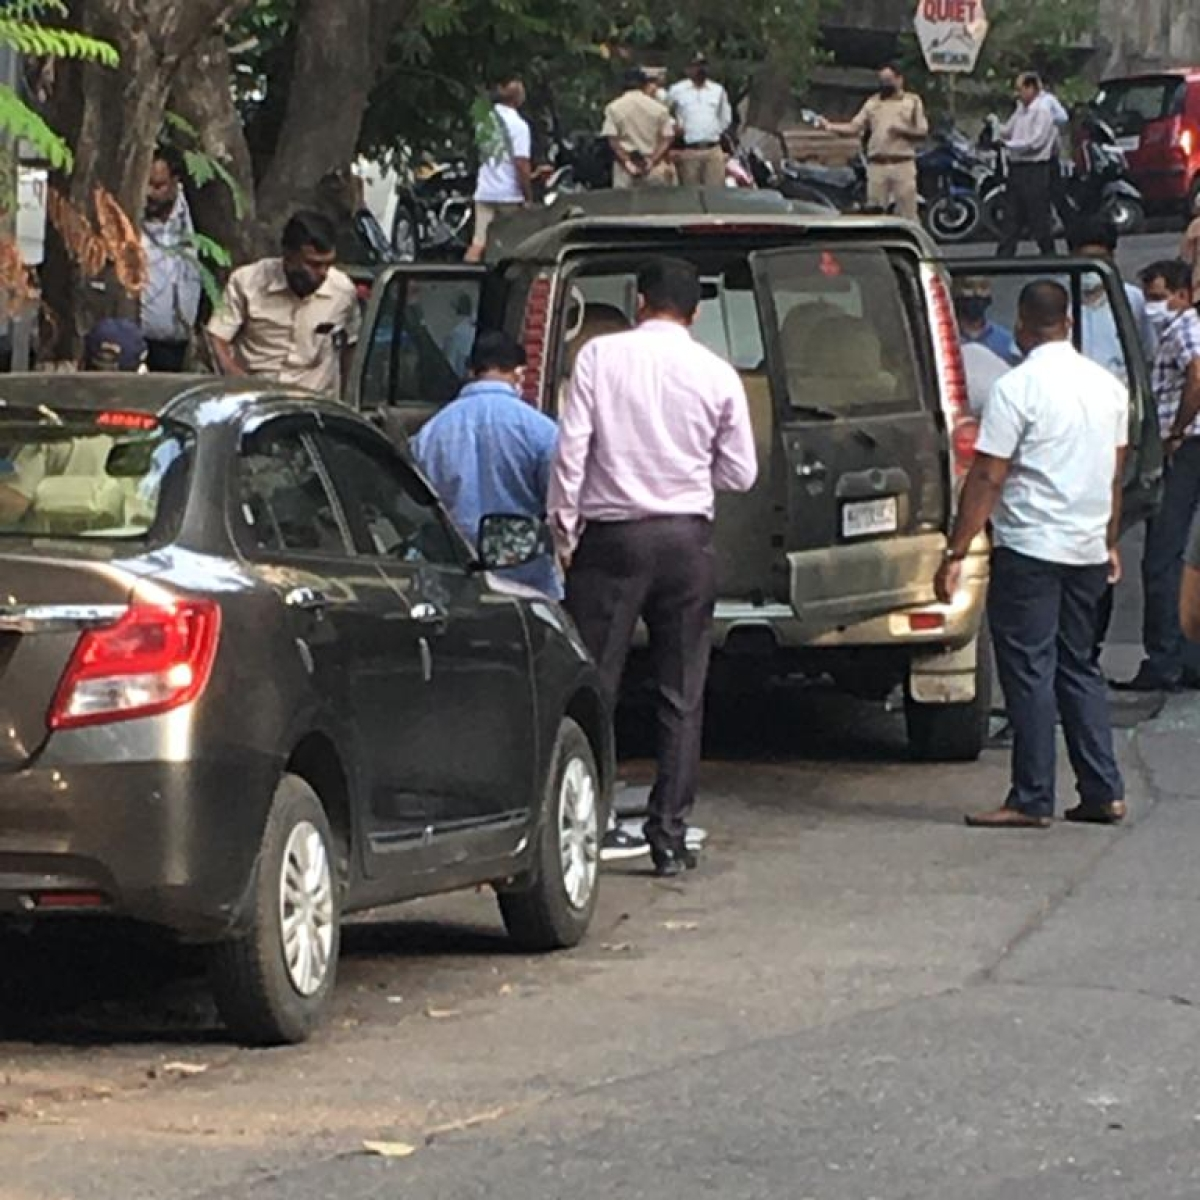 Antilia bomb scare: Owner of car found near Mukesh Ambani's residence commits suicide, body found in Thane's Kalwa creek